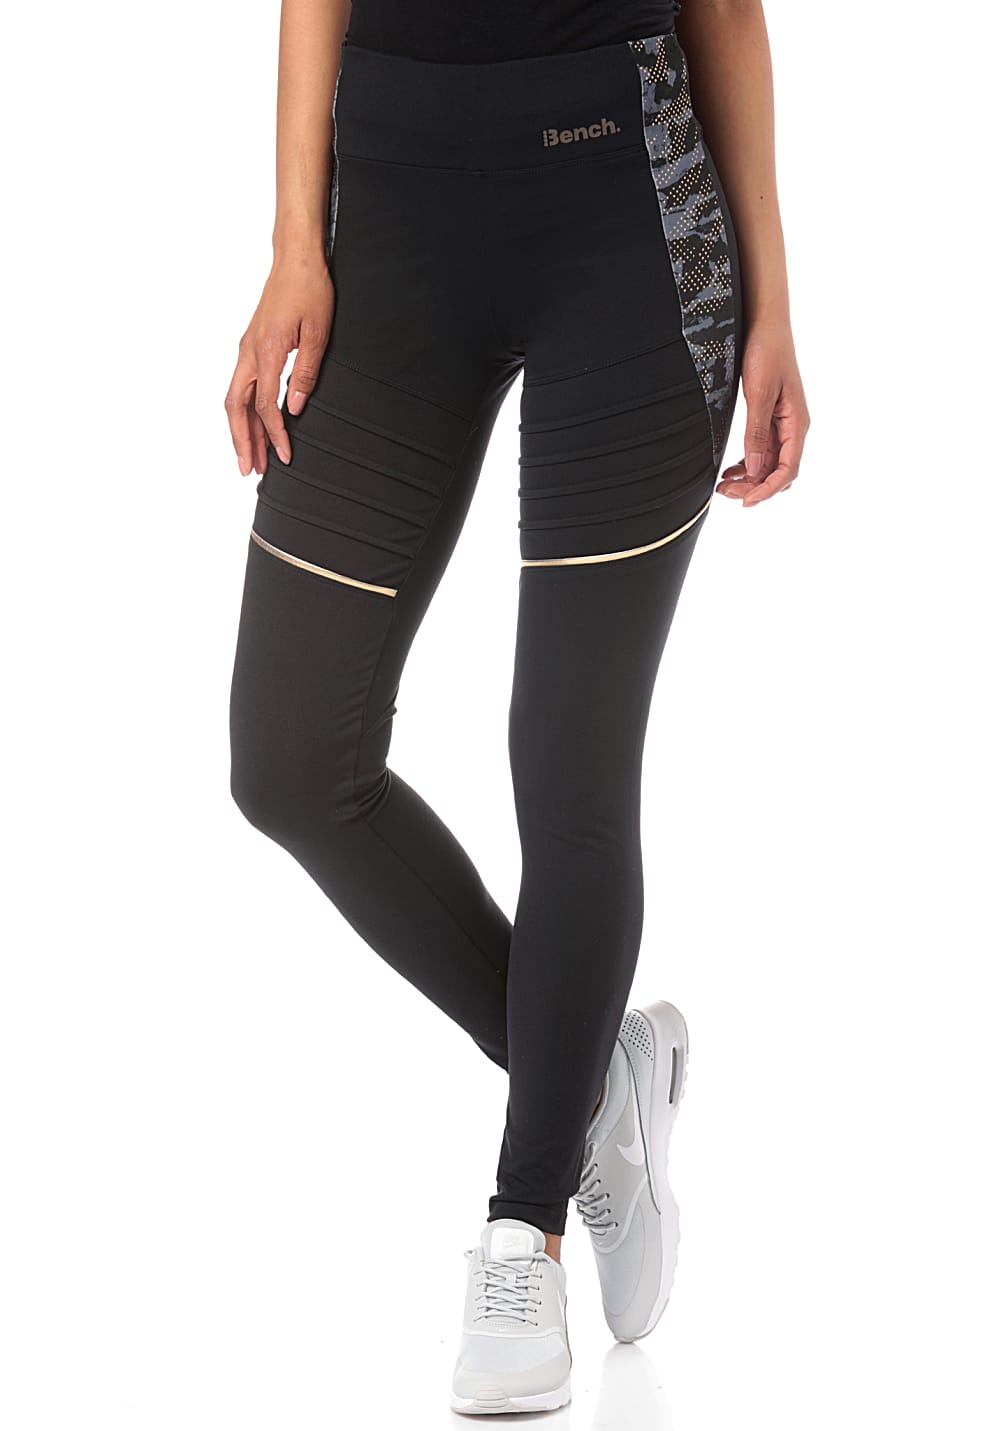 Hosen - Bench. Fluid Colour Block Leggings für Damen Schwarz  - Onlineshop Planet Sports